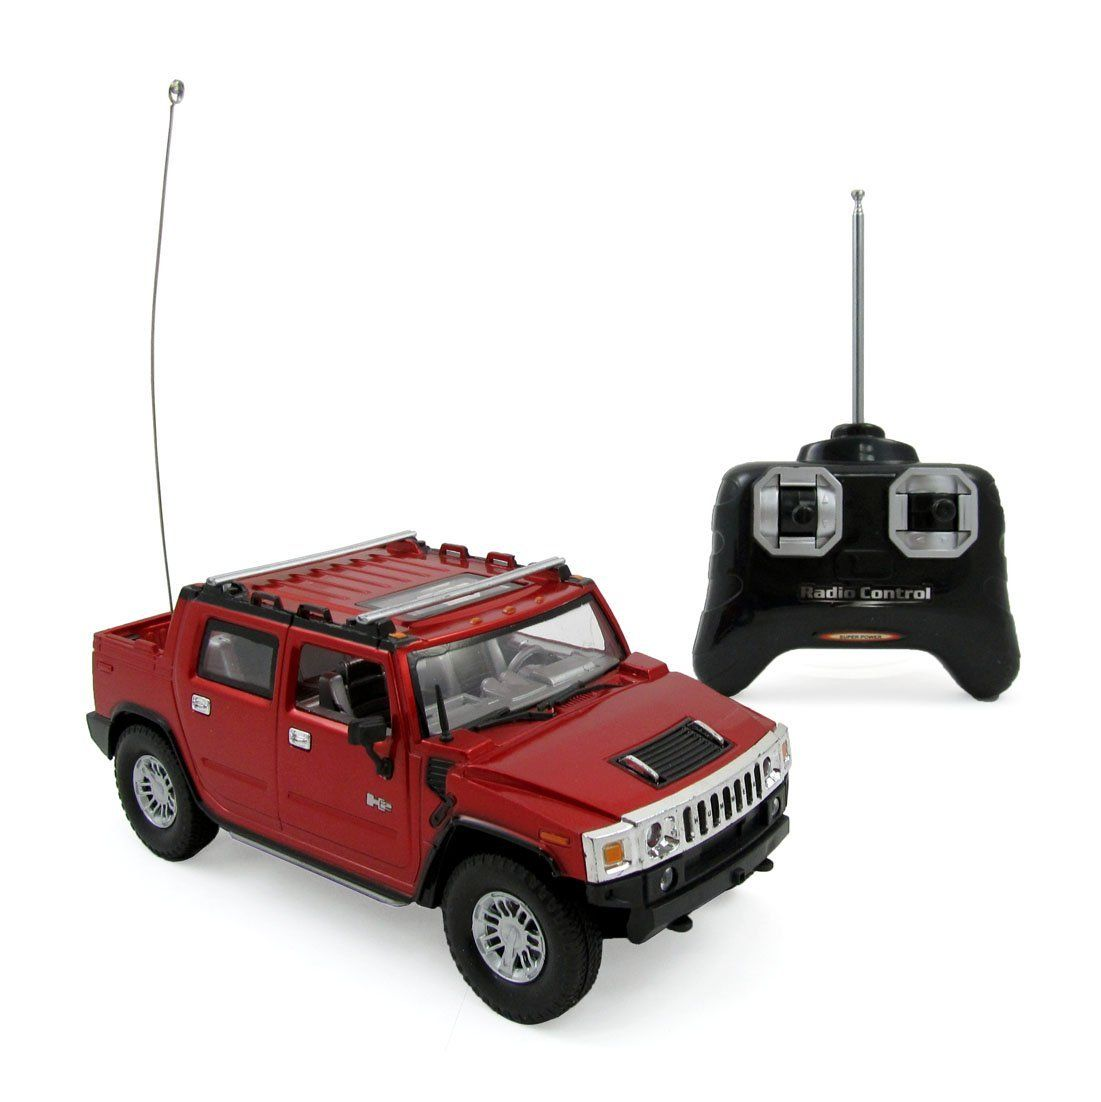 Hummer H2 Sut Full Function R C Radio Remote Control Car 1 24 Scale Remote Control Cars Hummer H2 Hummer